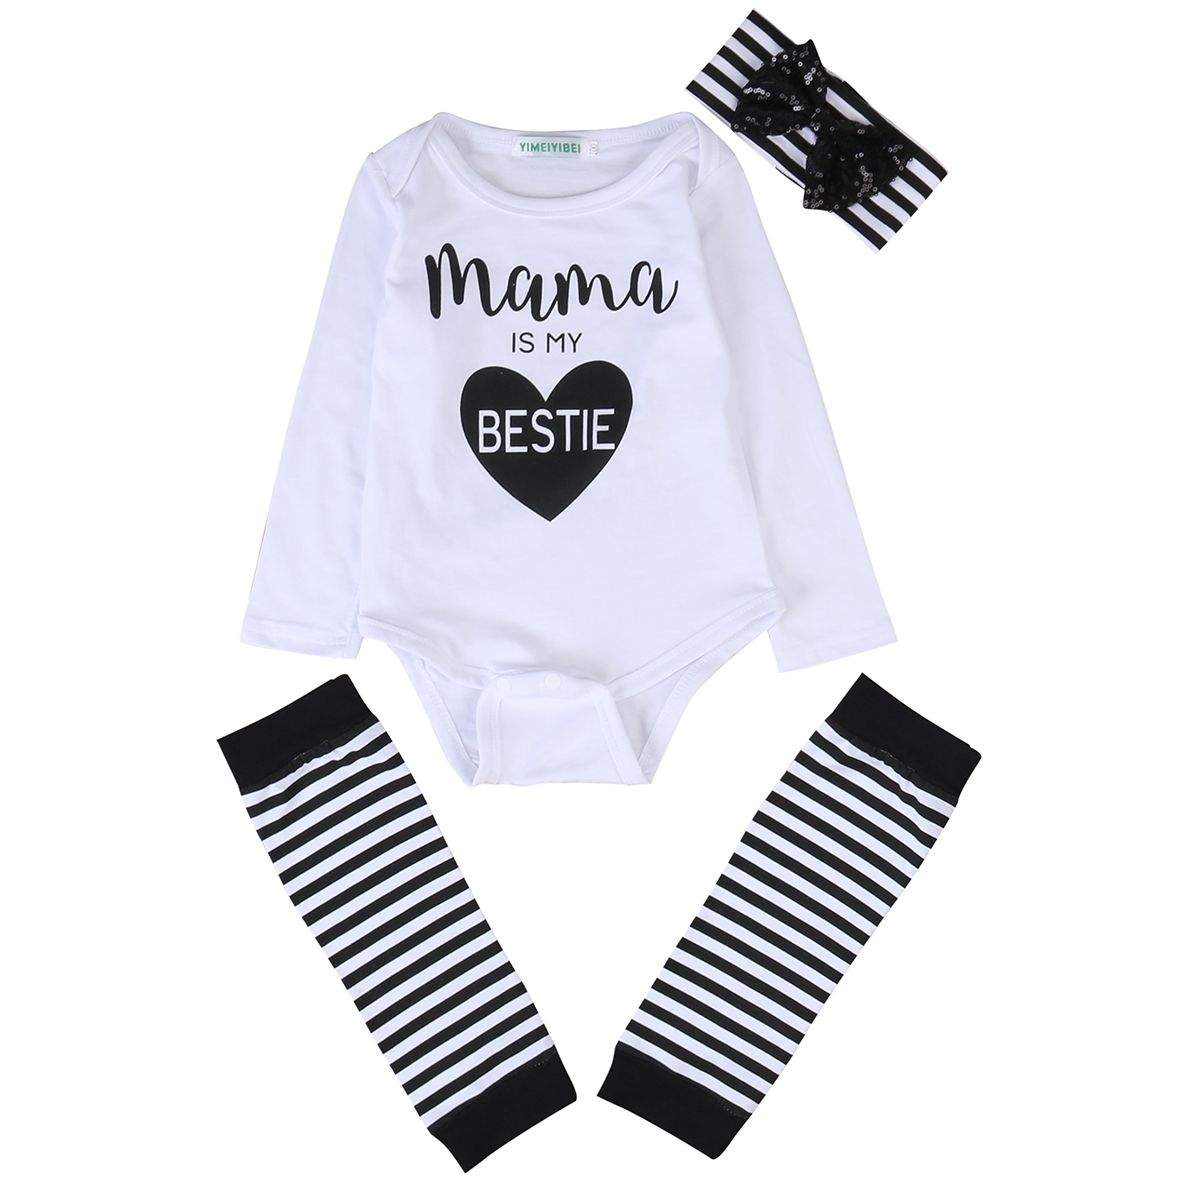 ab46e467f02 Click to Buy    3 Pcs Newborn Baby boys girls letter Bodysuits Onesie  Clothing Set Babies Bodysuit+Leg Warmer+Headband Outfits Kids Clothing   Affiliate